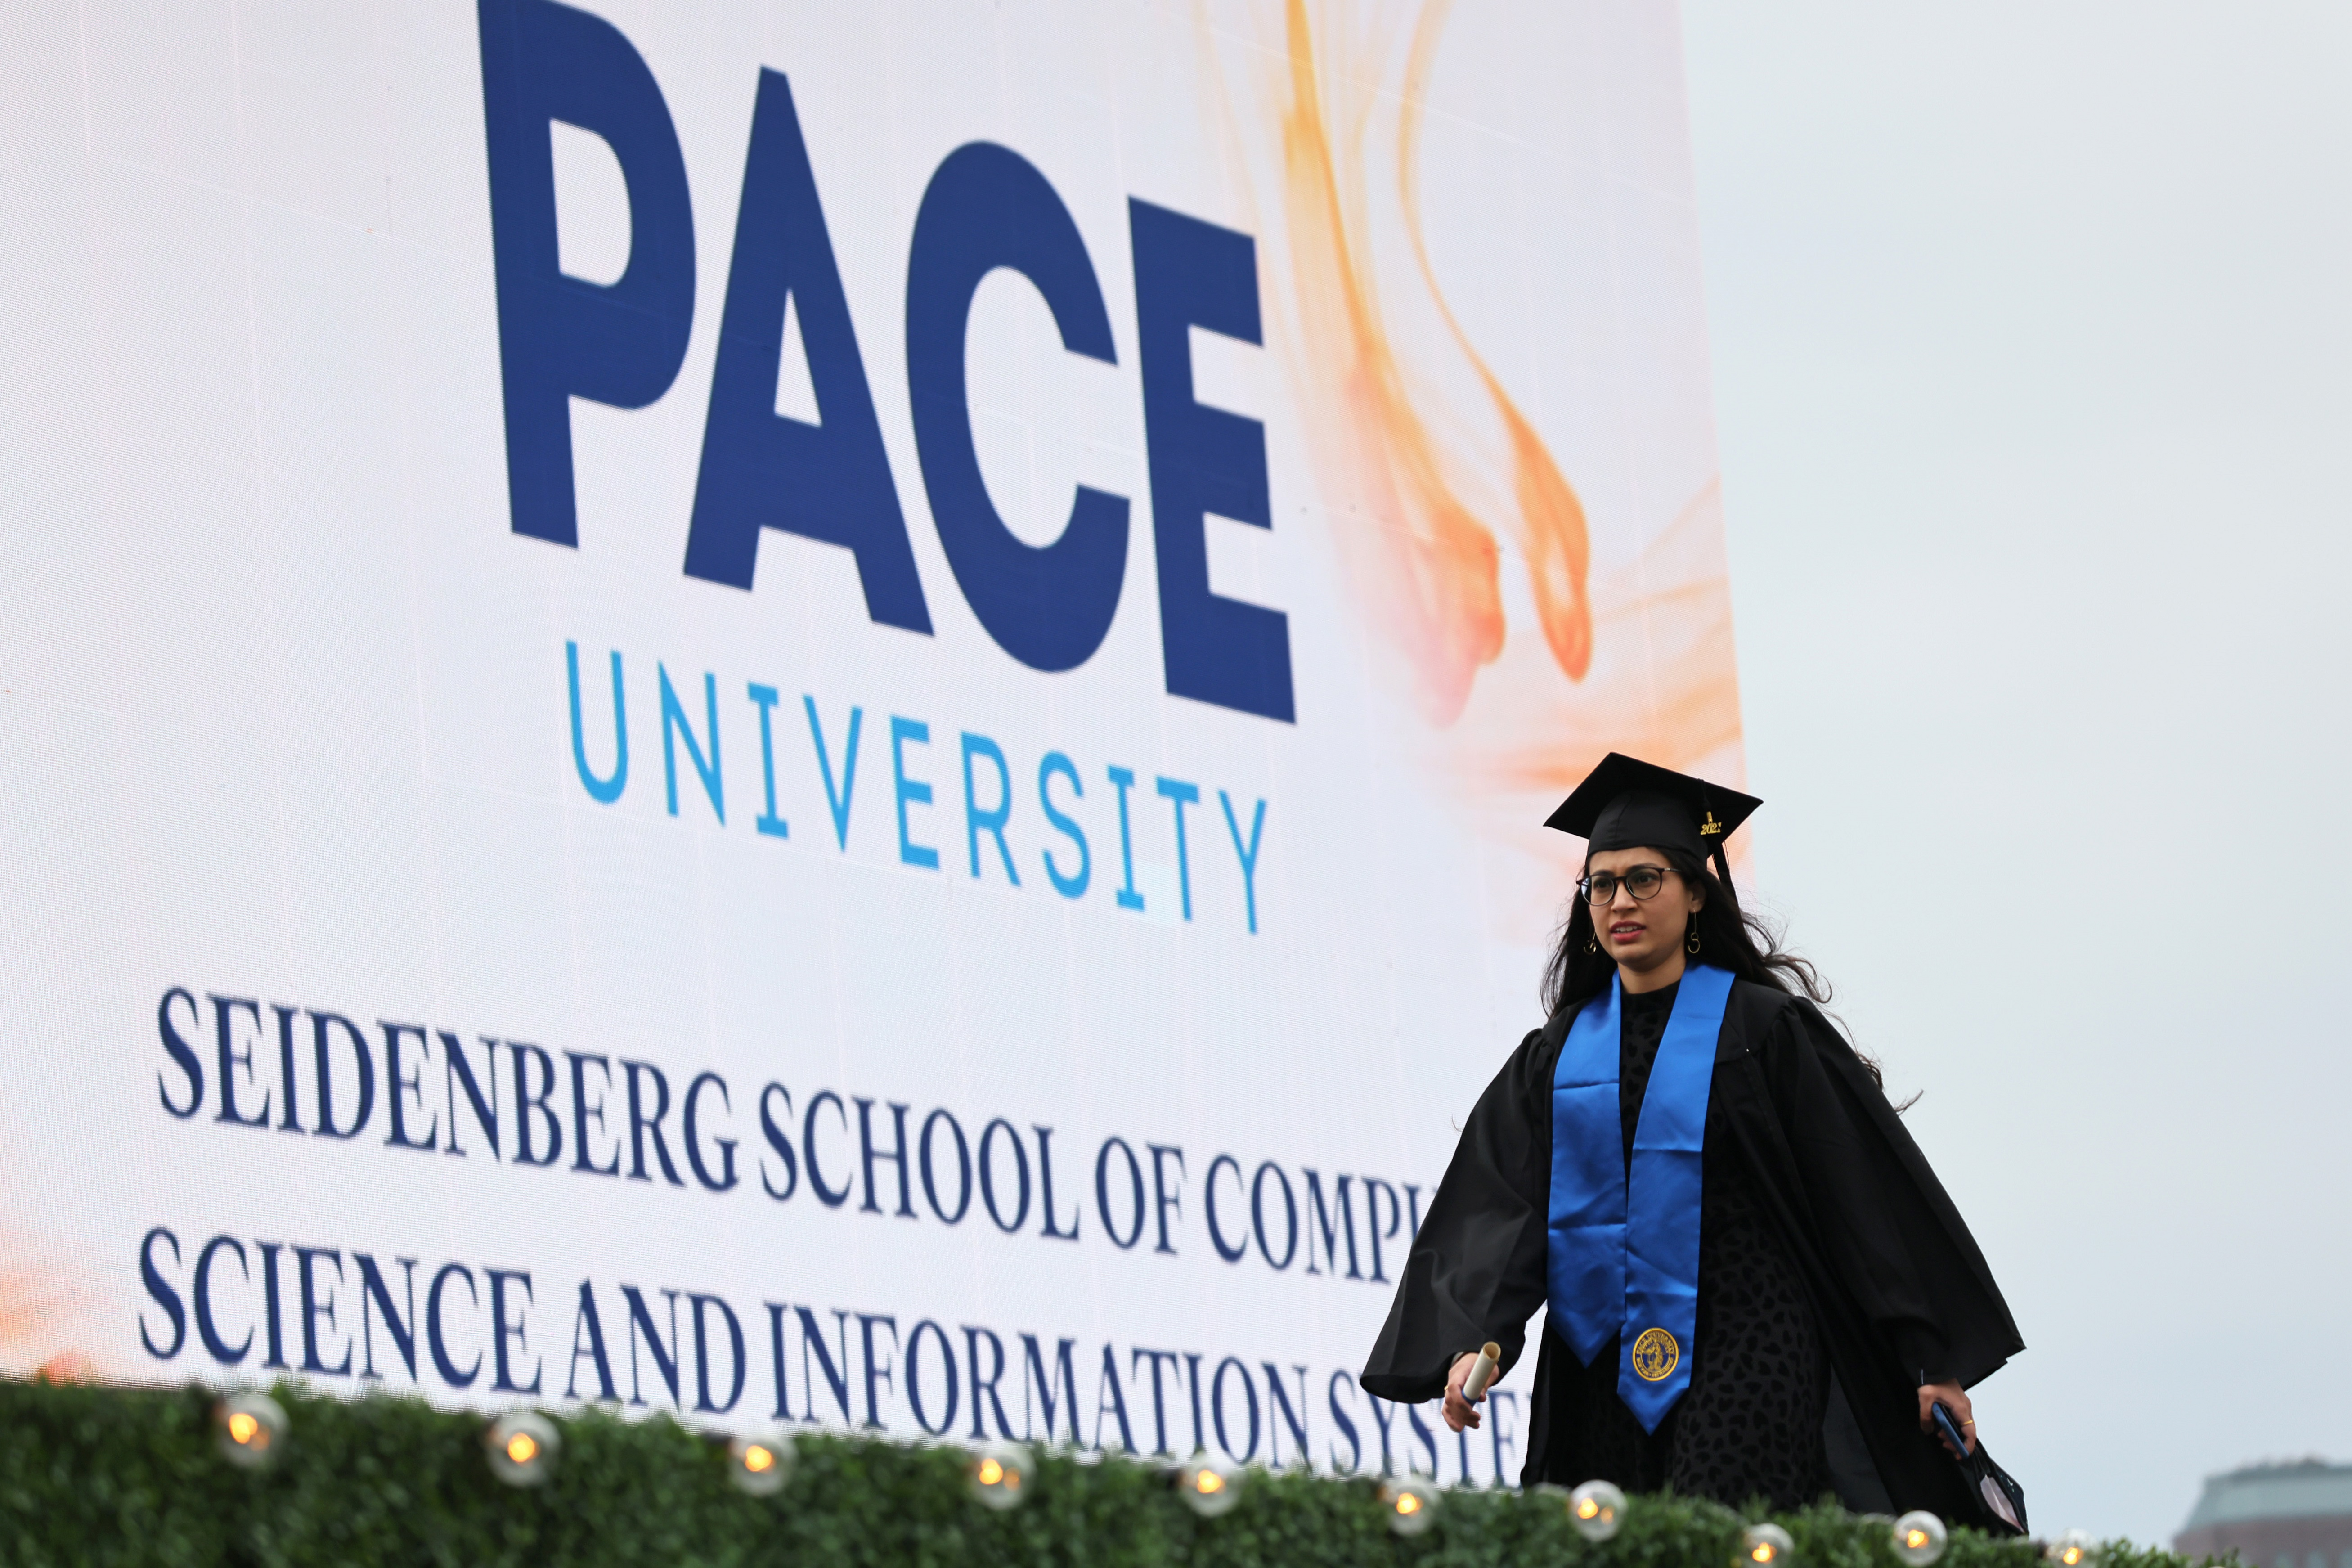 New York City's Pace University Holds Small In Person Graduation Ceremony At South Street Seaport